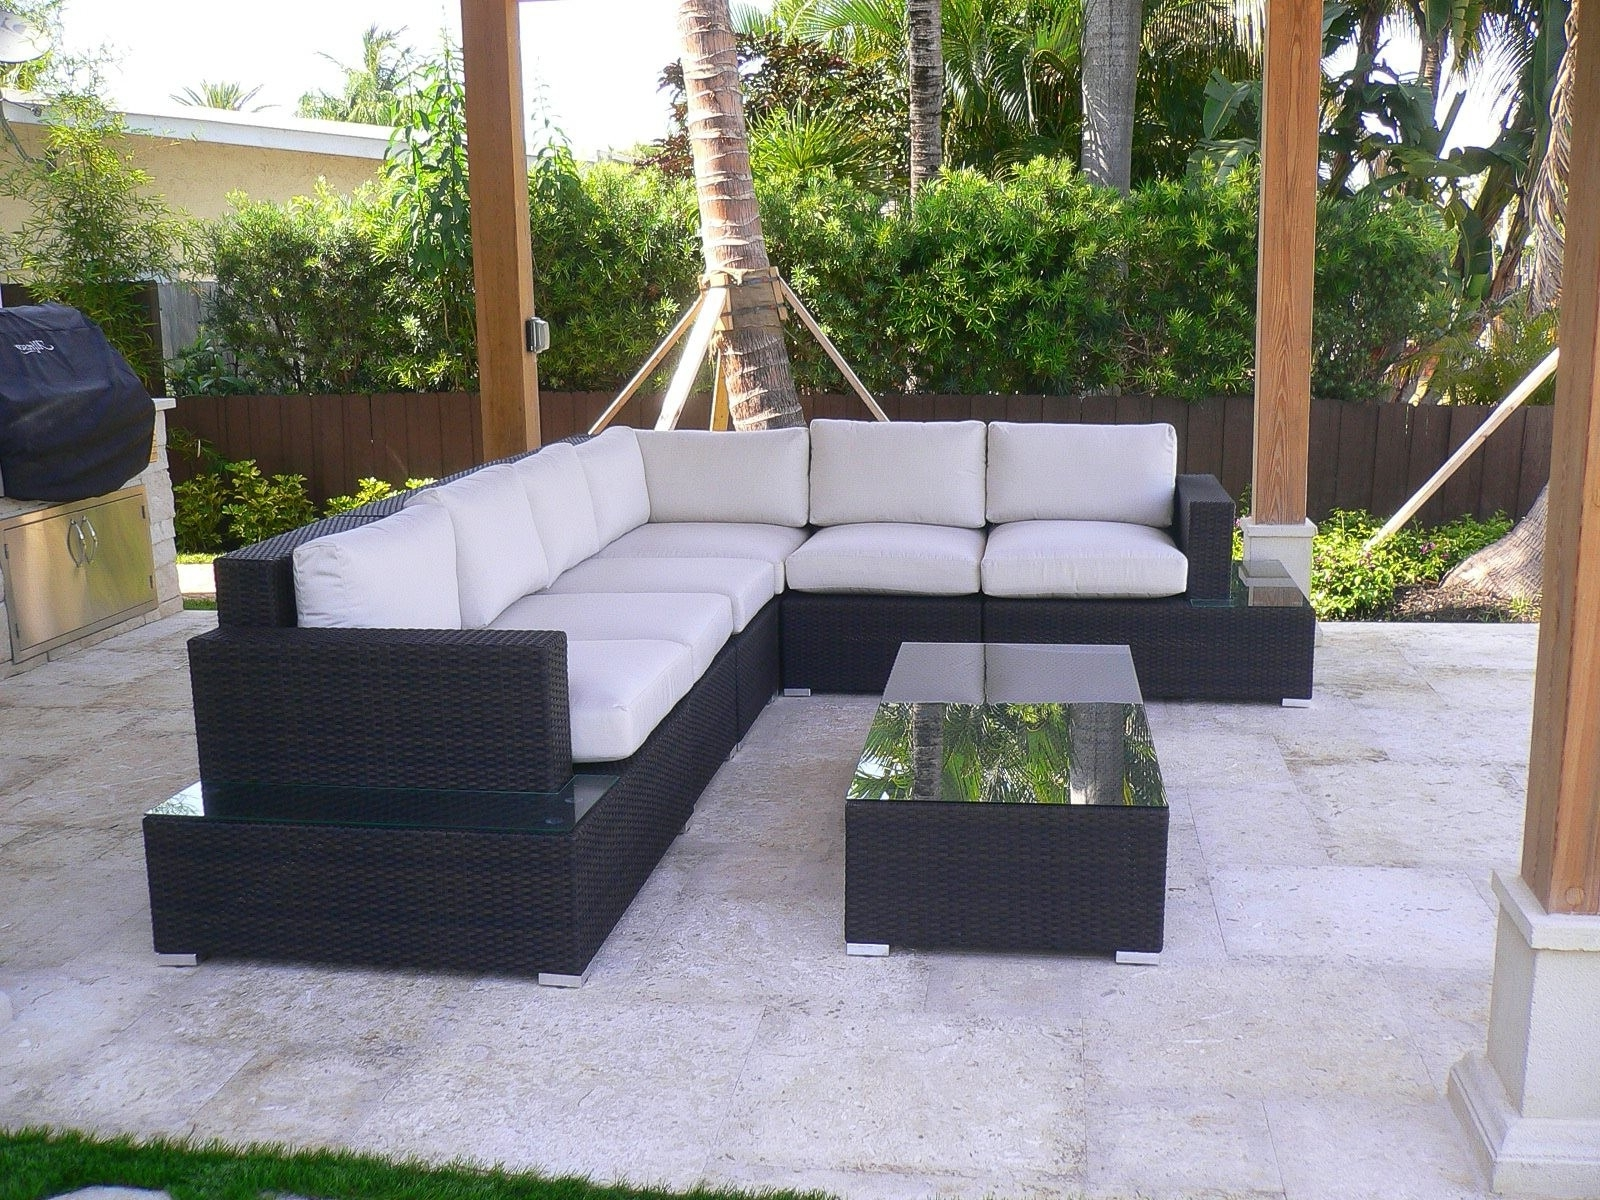 Fashionable Krevco Patio Umbrellas With Source Outdoor Manhattan Collection – Source Outdoor Patio Furniture (View 3 of 20)